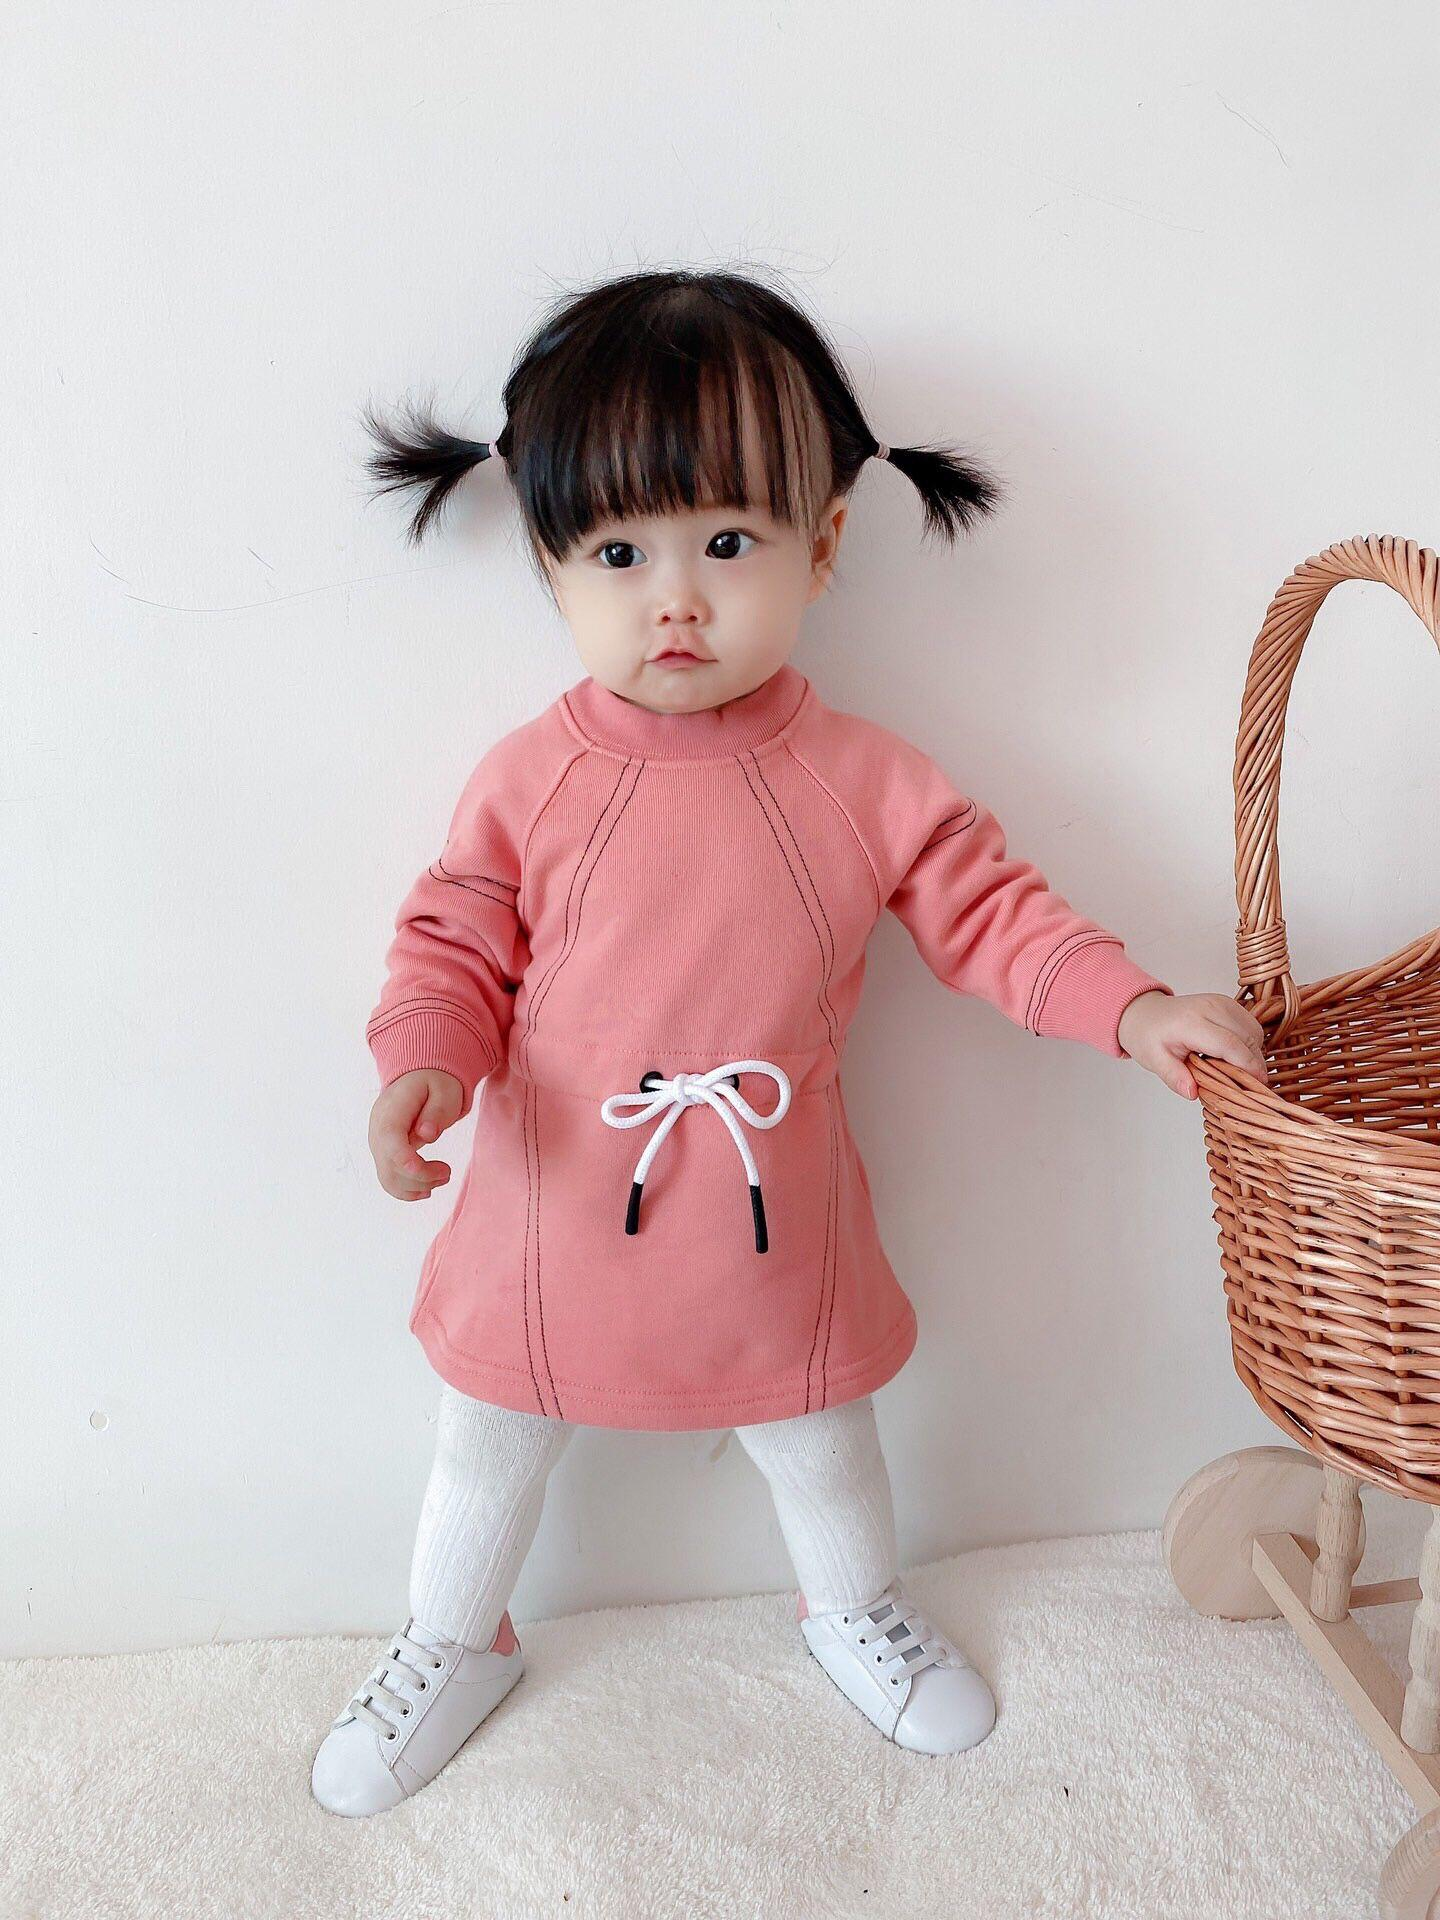 free shipping baby Girls Dress Long Sleeve Cotton Dresses for Baby Girls Floral Birds Kids Wear Baby Girls 6m-36month Spring Autumn Dress